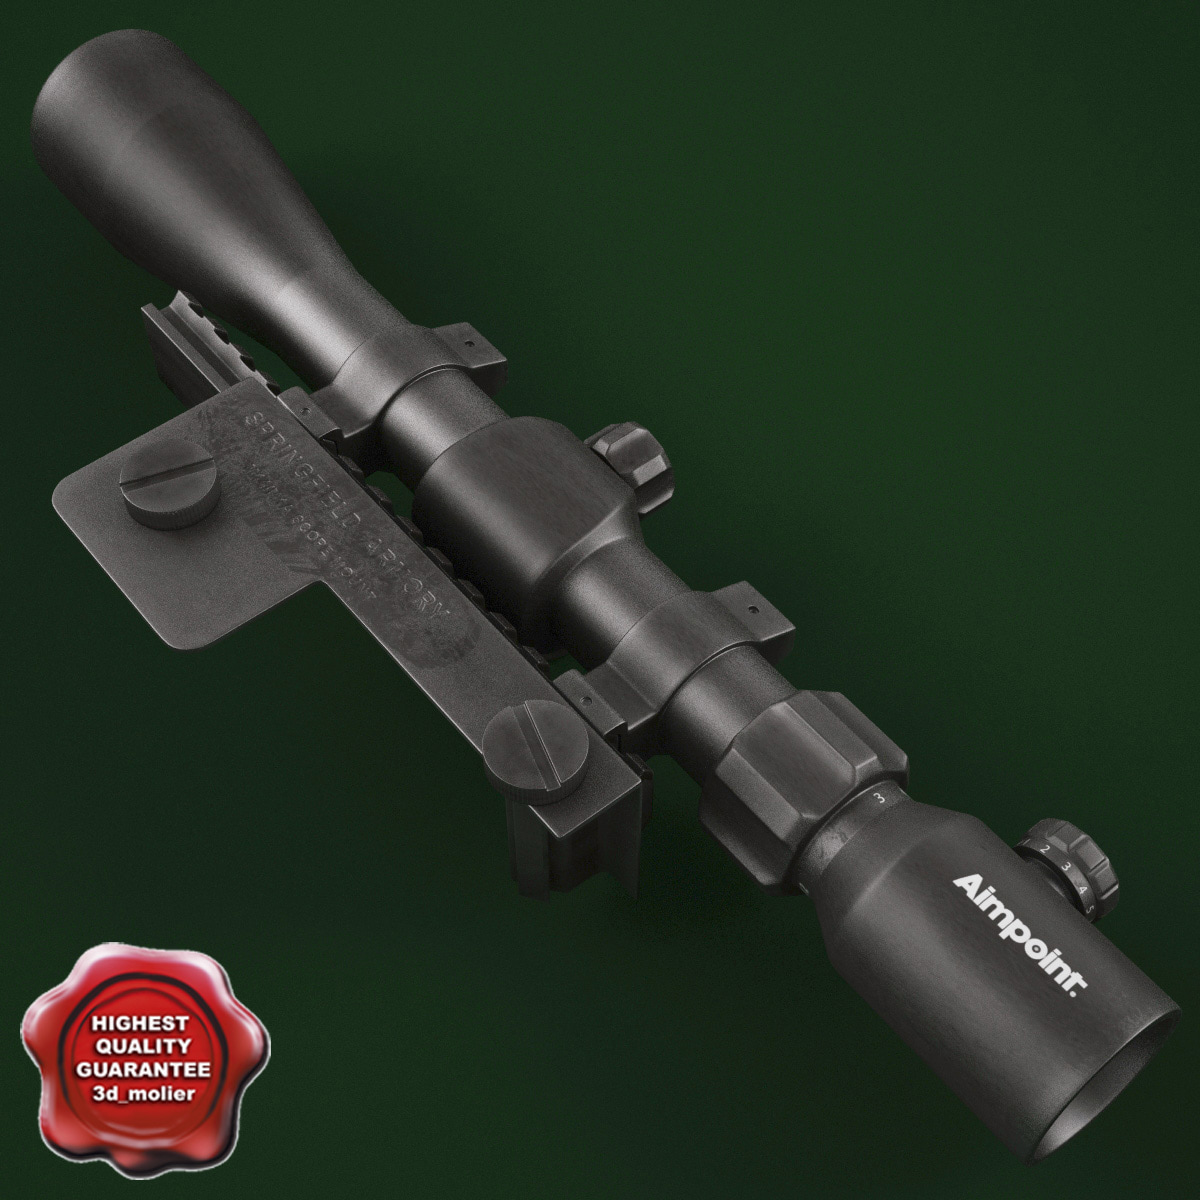 Aimpoint_Optical_Scope_00.jpg